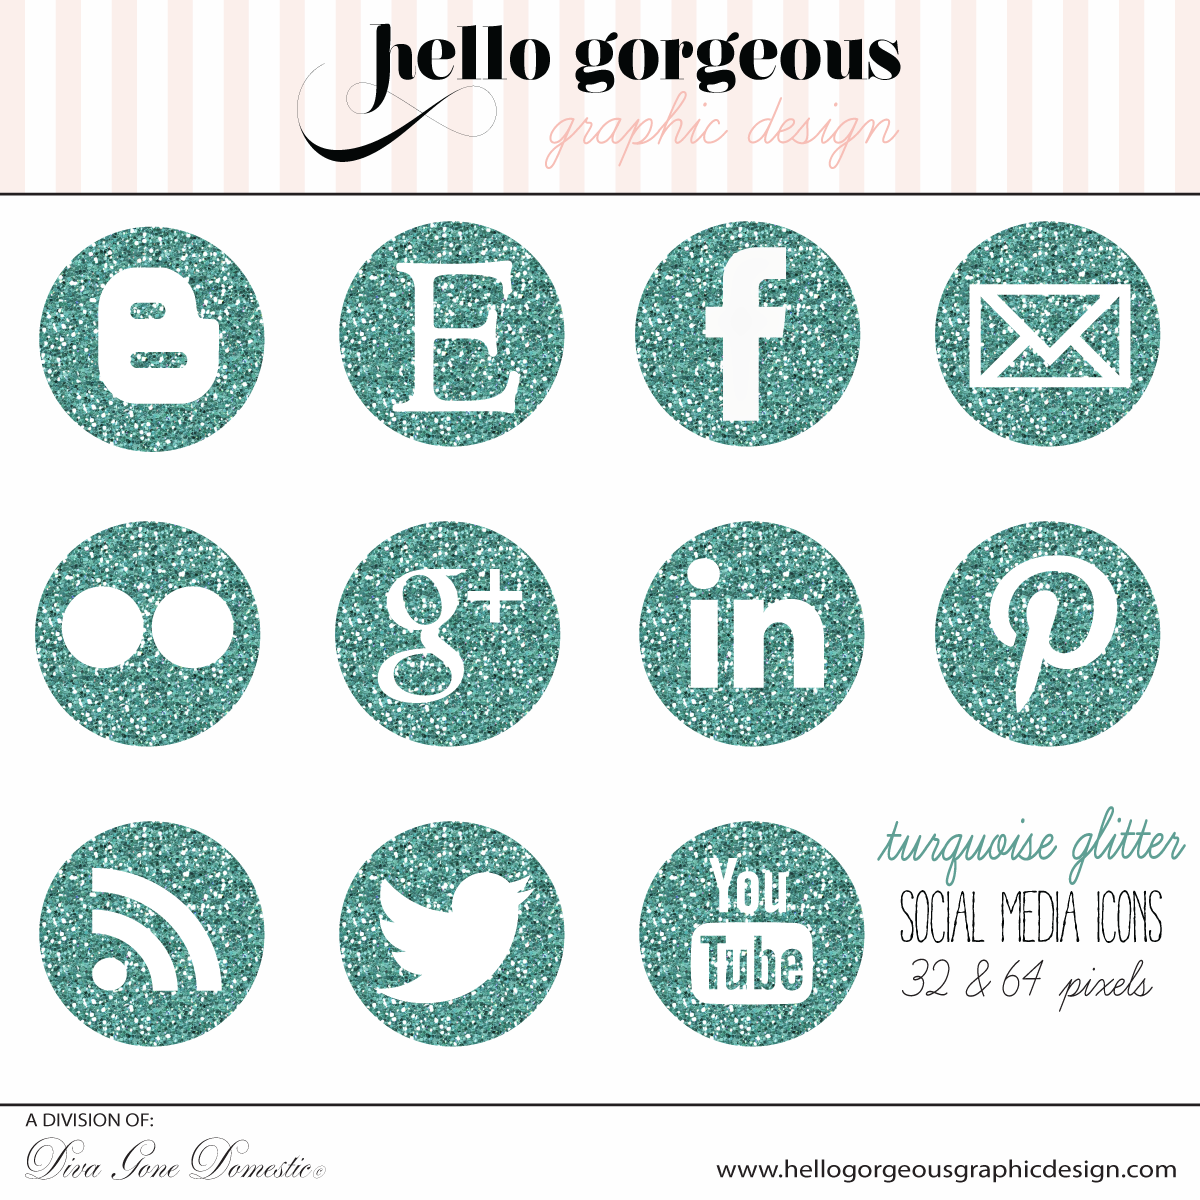 Turquoise Glitter Social Media Icon set includes 32px